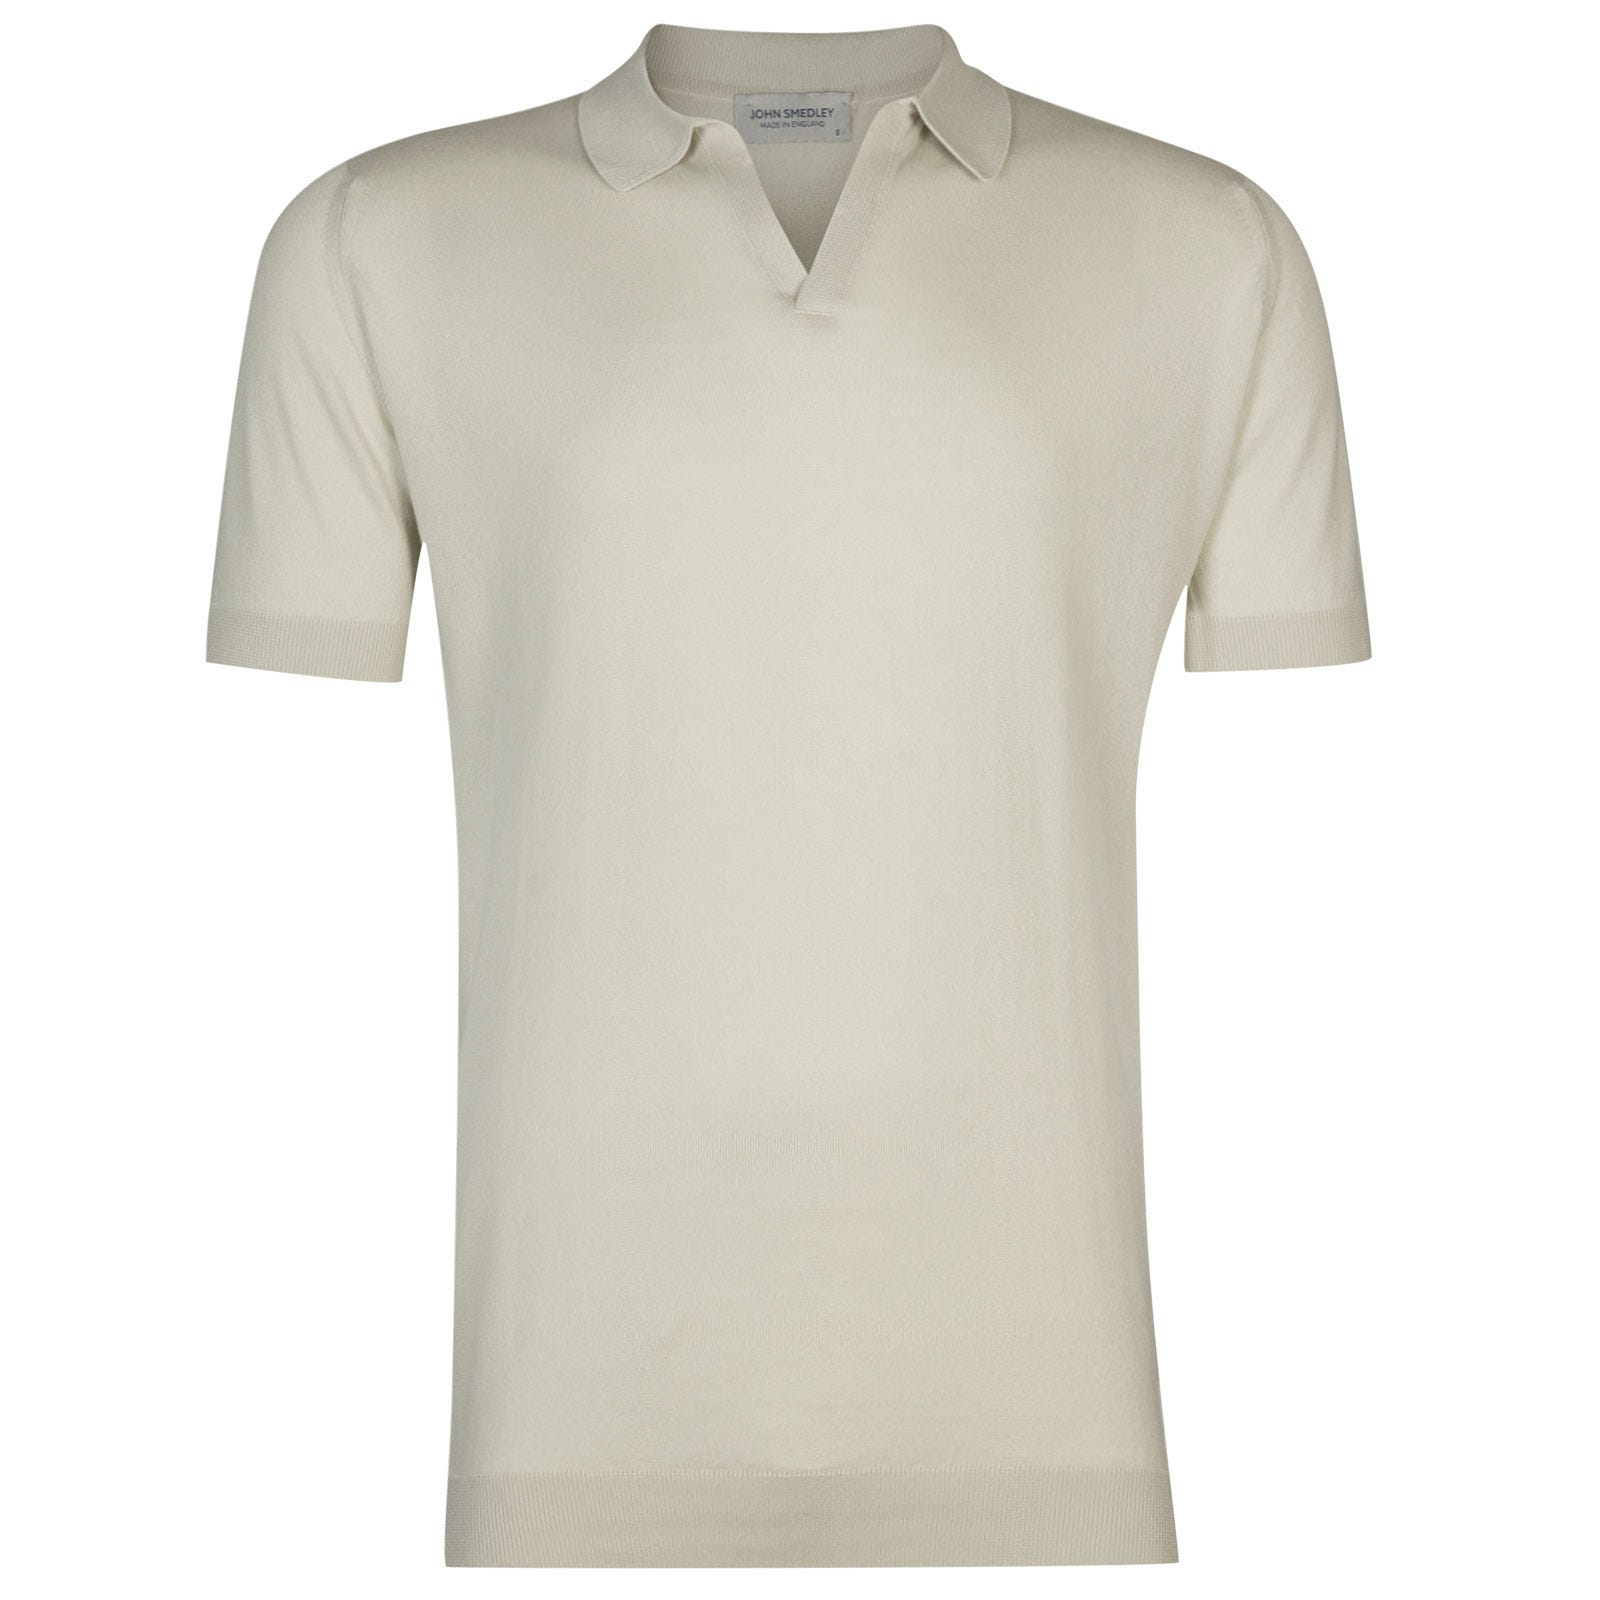 John Smedley Noah Sea Island Cotton Shirt in Brunel Beige-M